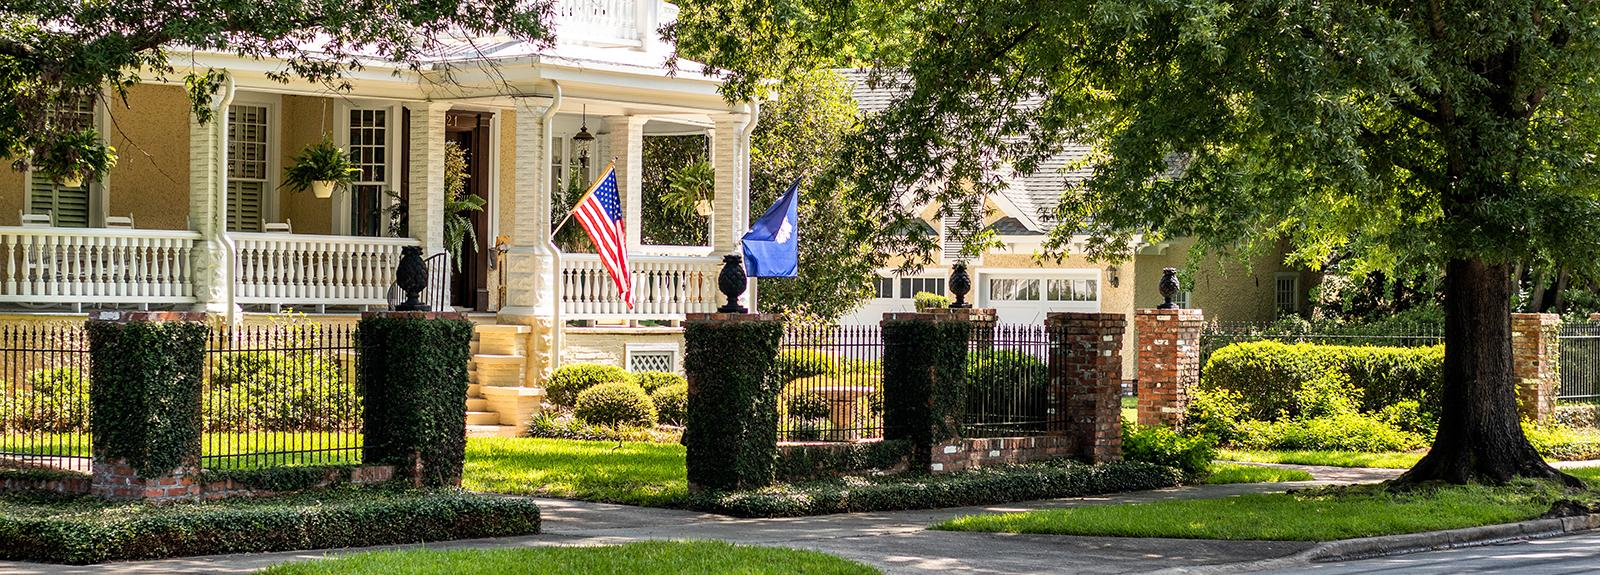 An historic home on Calhoun Street in Downtown Sumter proudly displays the South Carolina and US Flags